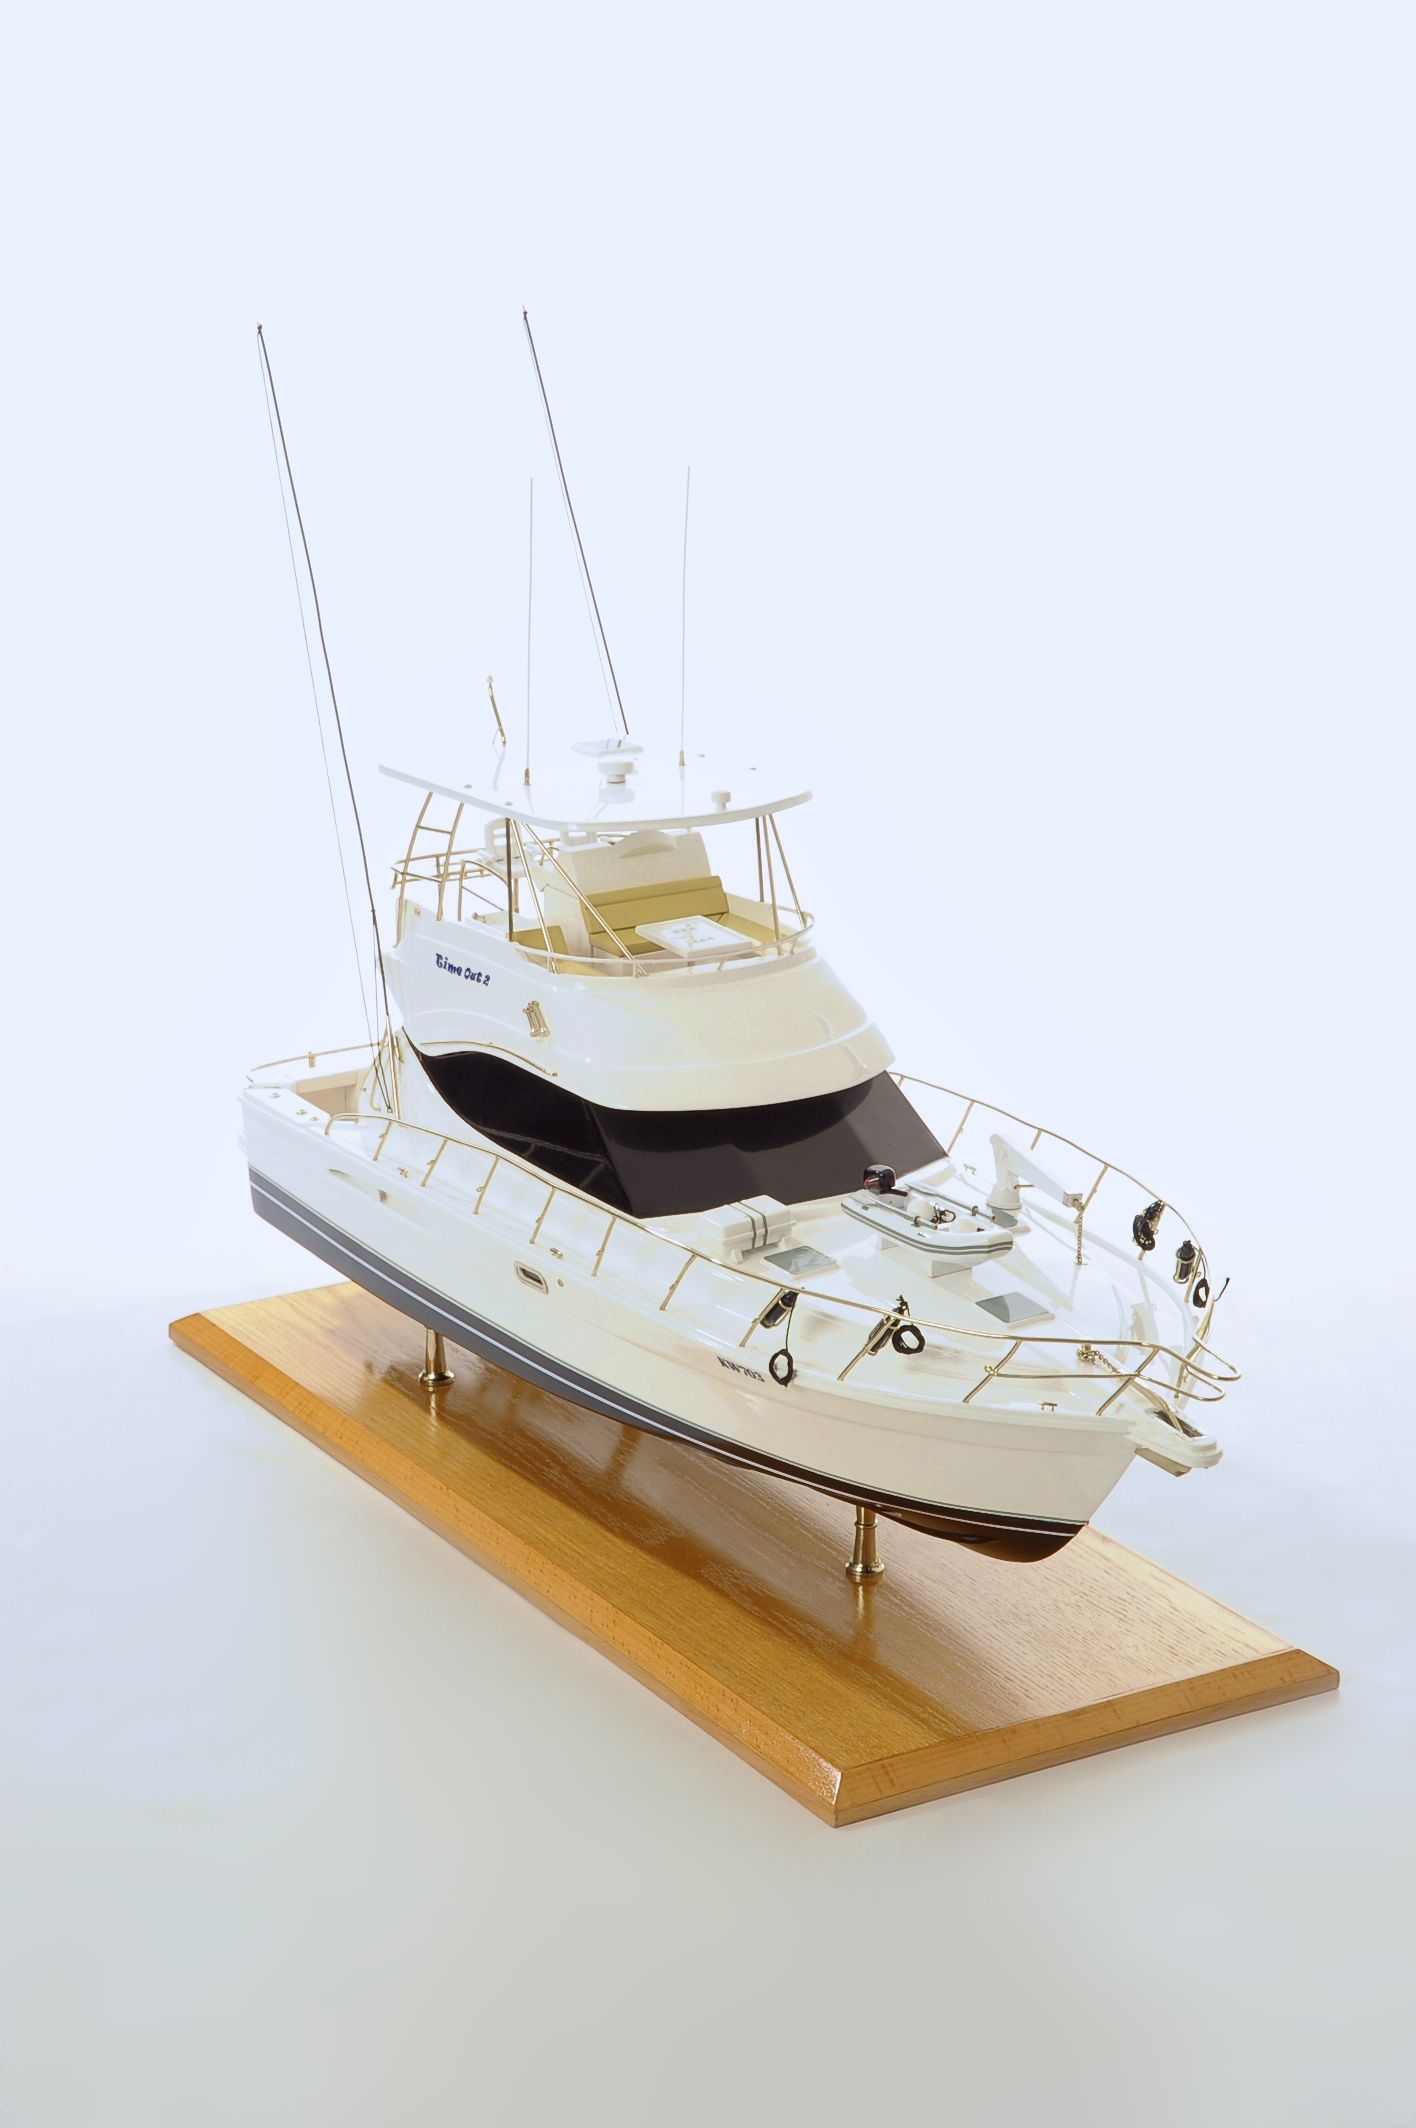 1517-8950-Rivera-45-Model-Boat-Time-Out-2